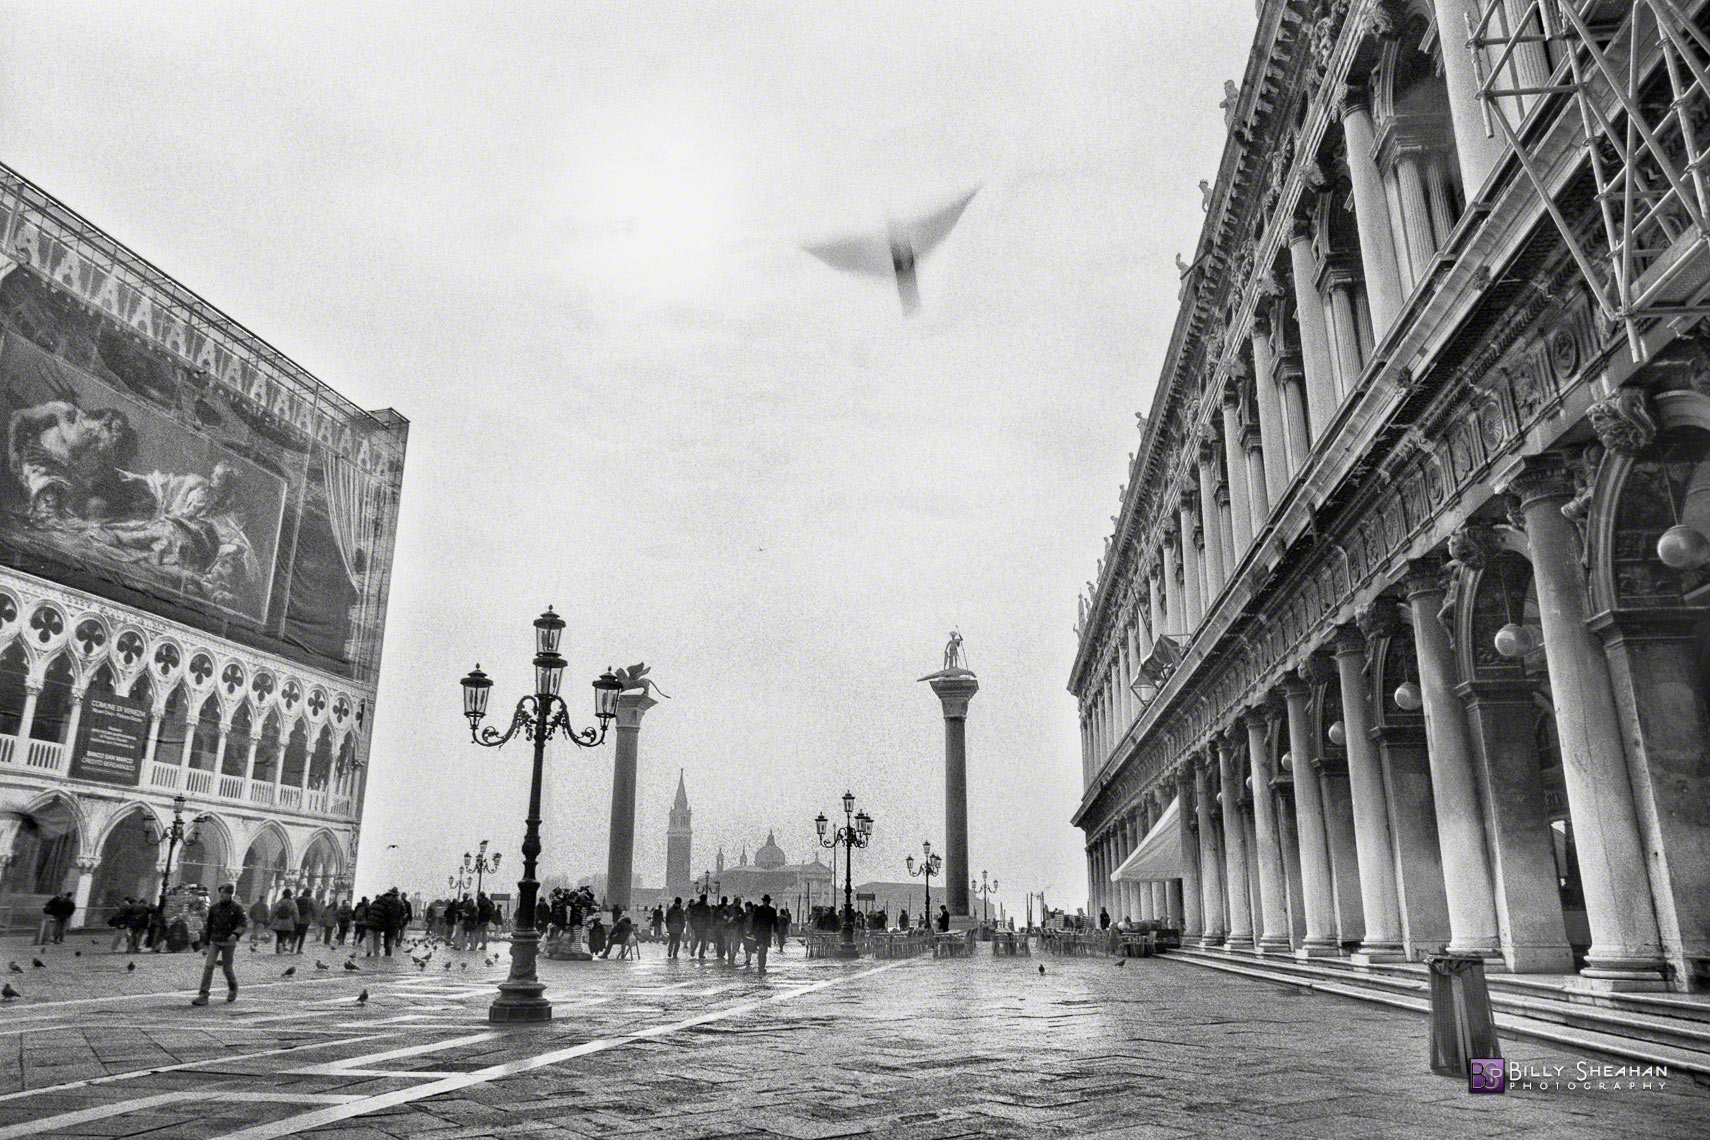 Bird_Over_Piazza_San_Marco,_Venice,_Italy_Italy-642_01_BW_D